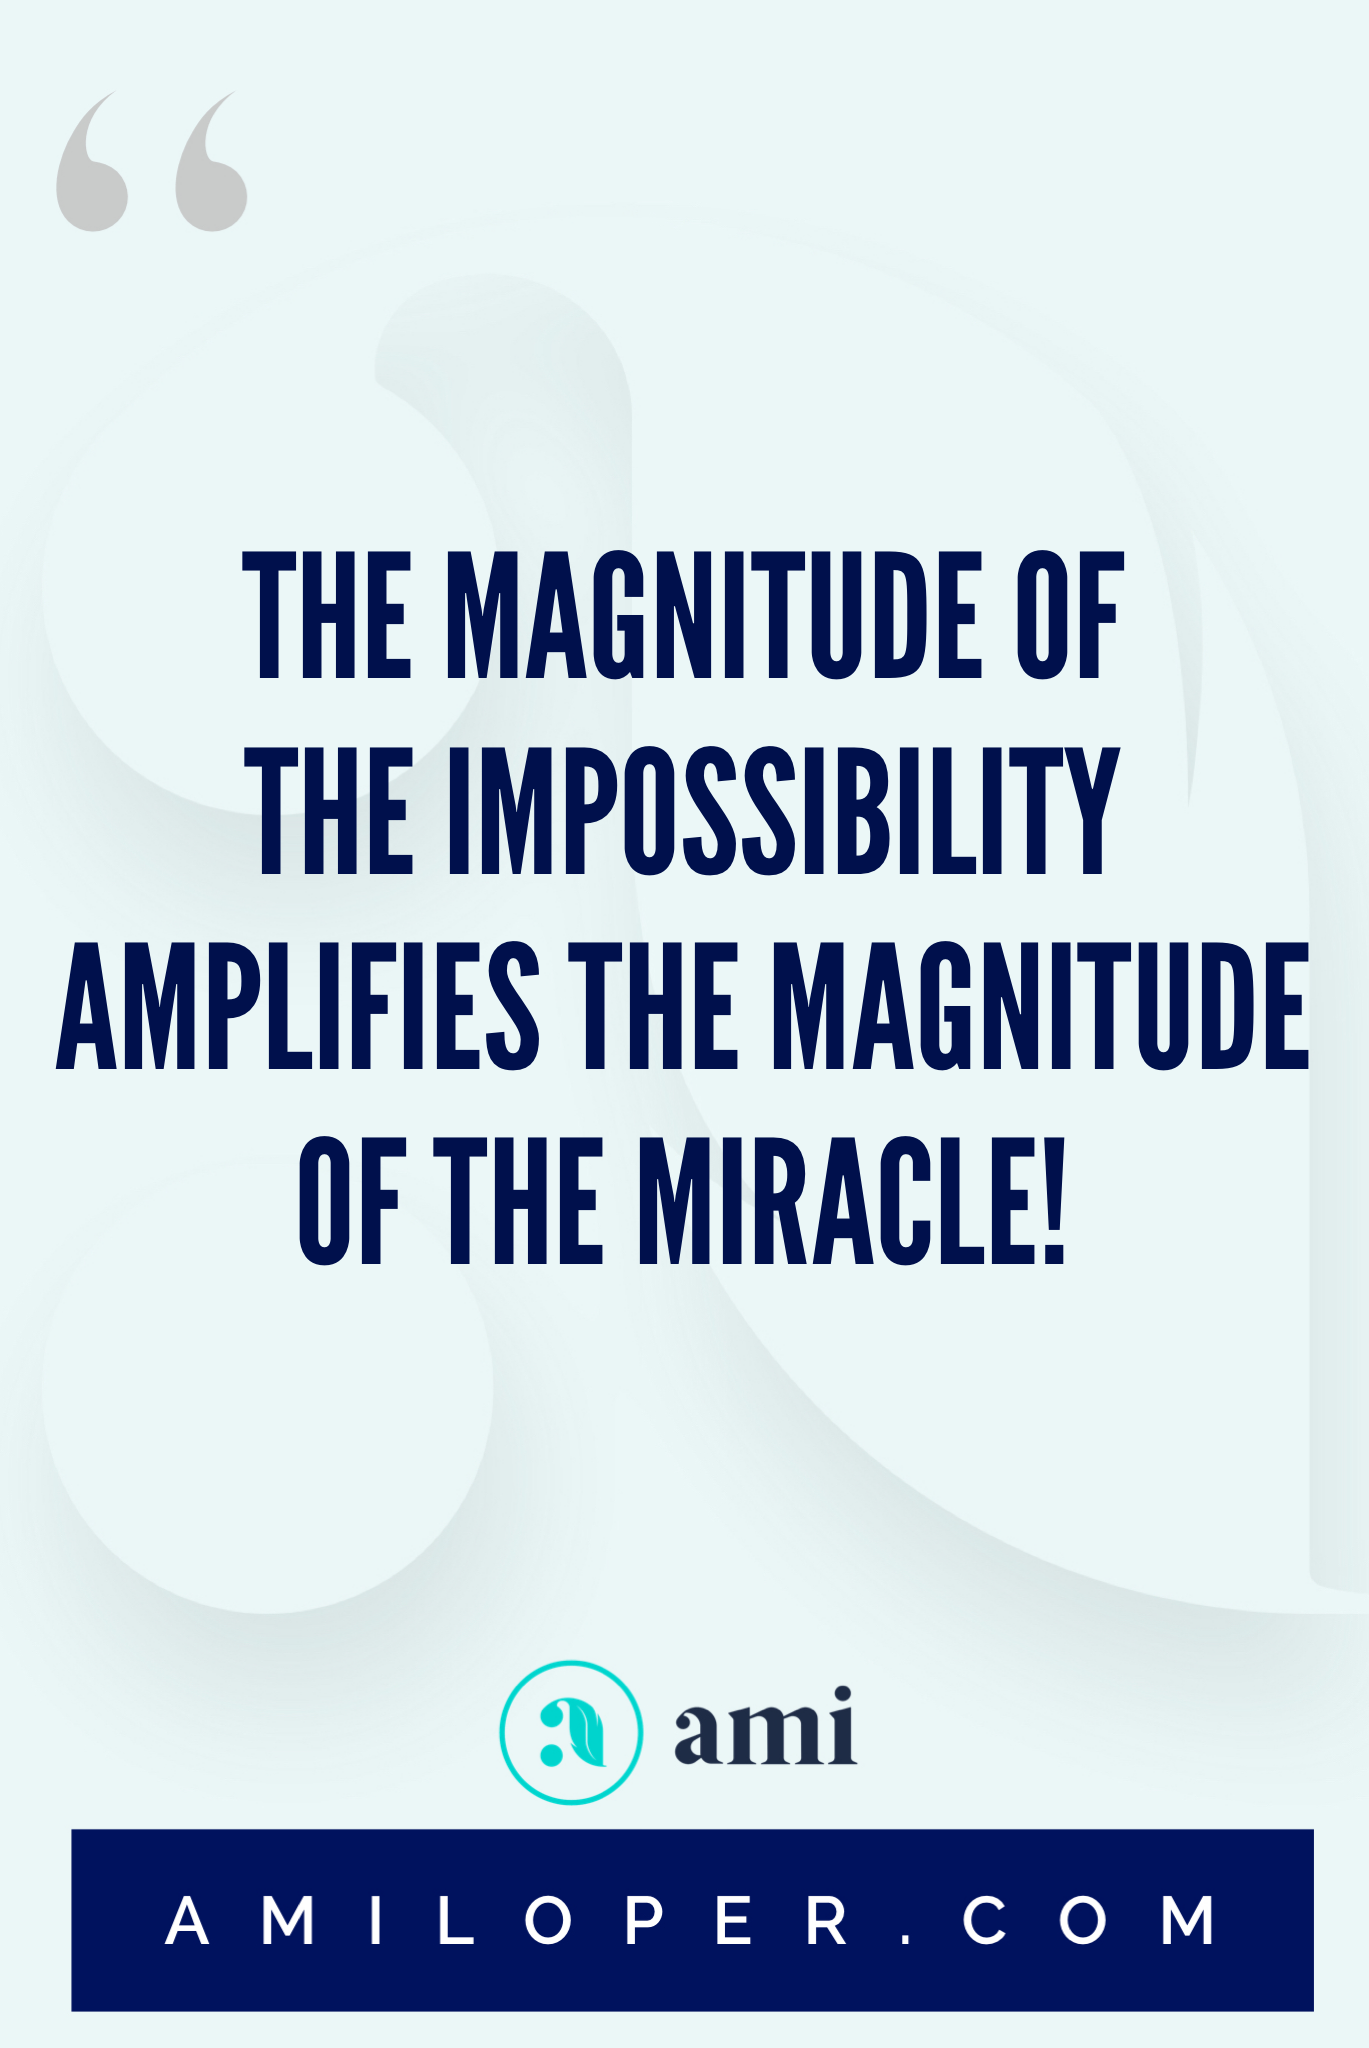 Everywhere you look, are you faced with impossibilities that threaten to thwart the plan of God for your life? Well, take heart, Friend! That's the best possible place for God to display His glory! #Impossible #ICanDoIt #Miracle #Believe